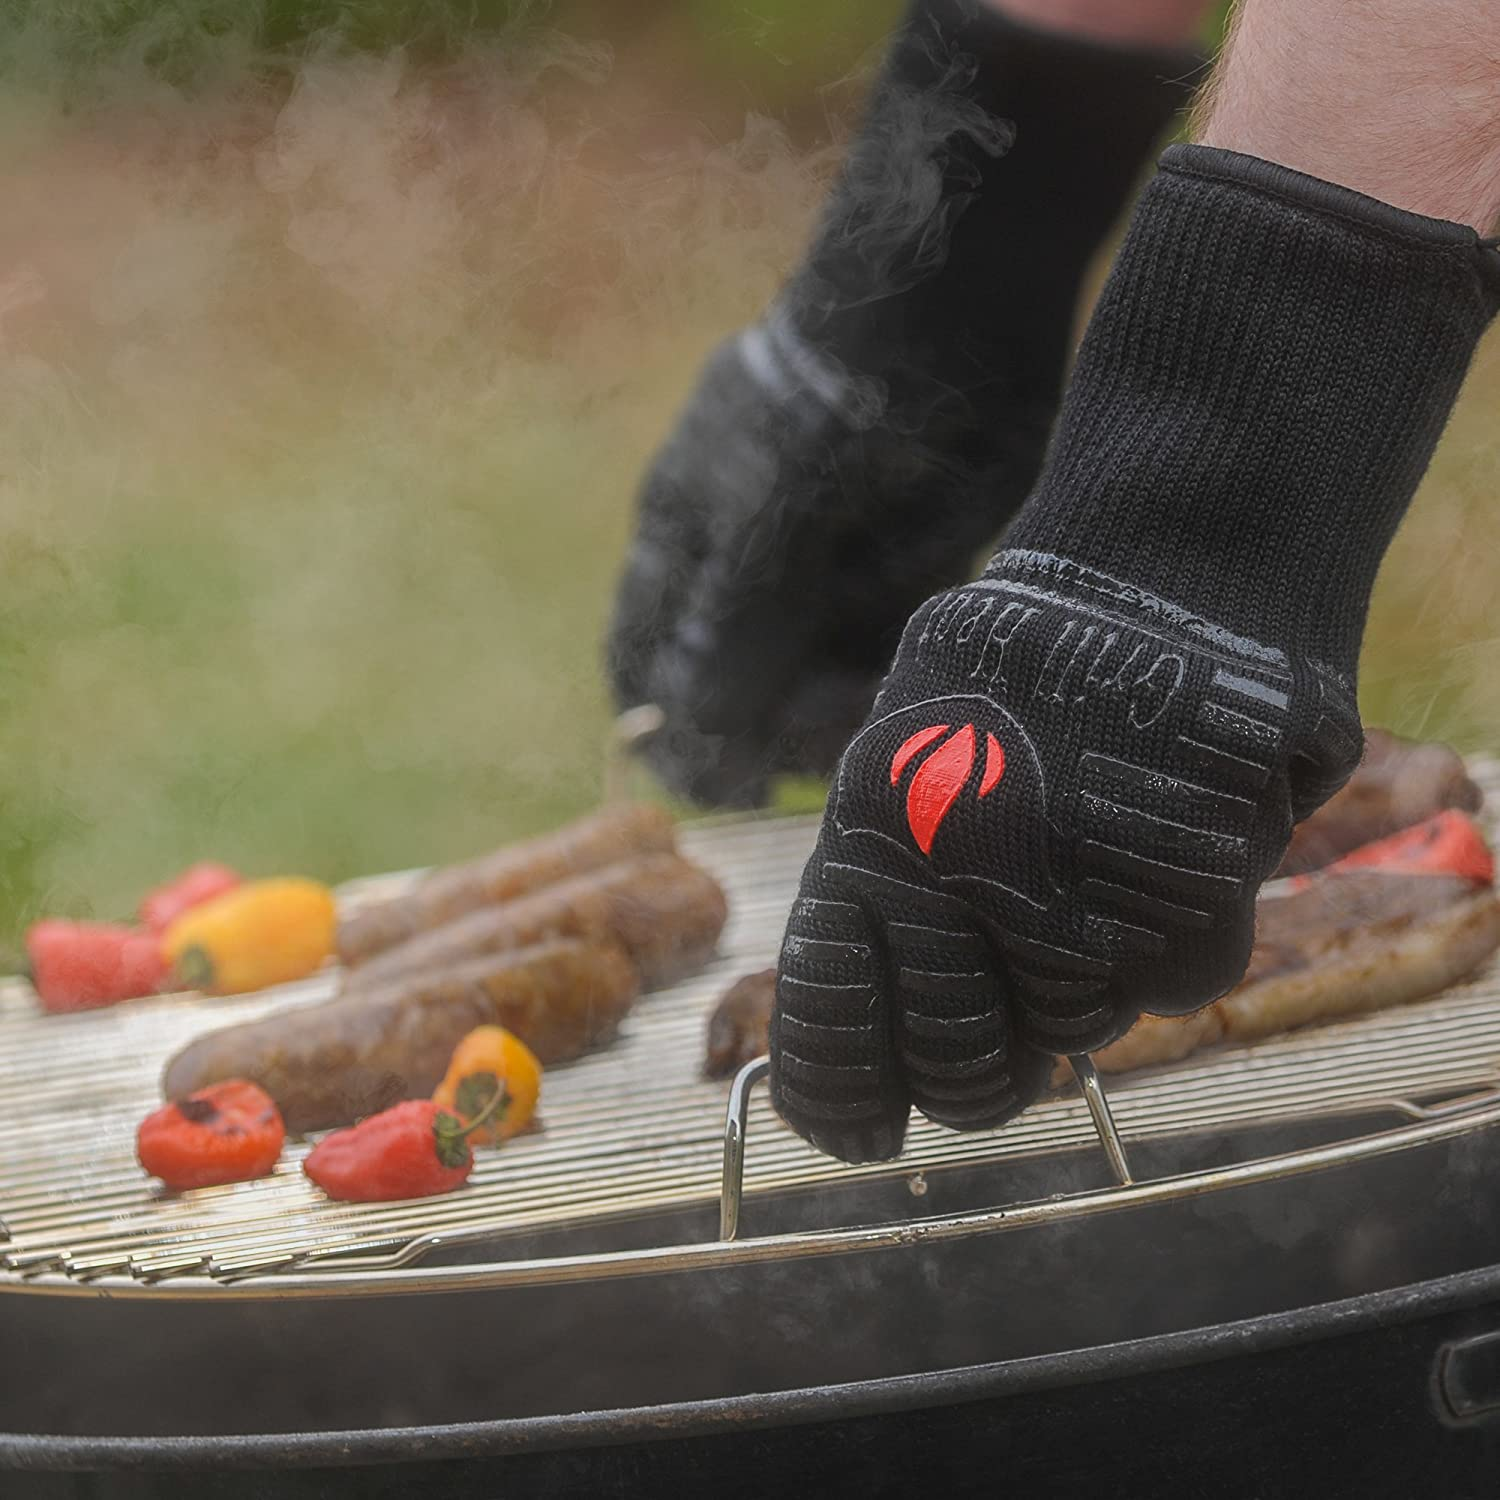 Grill Heat Aid Extreme Heat Resistant Grill/BBQ Gloves For Men & Women